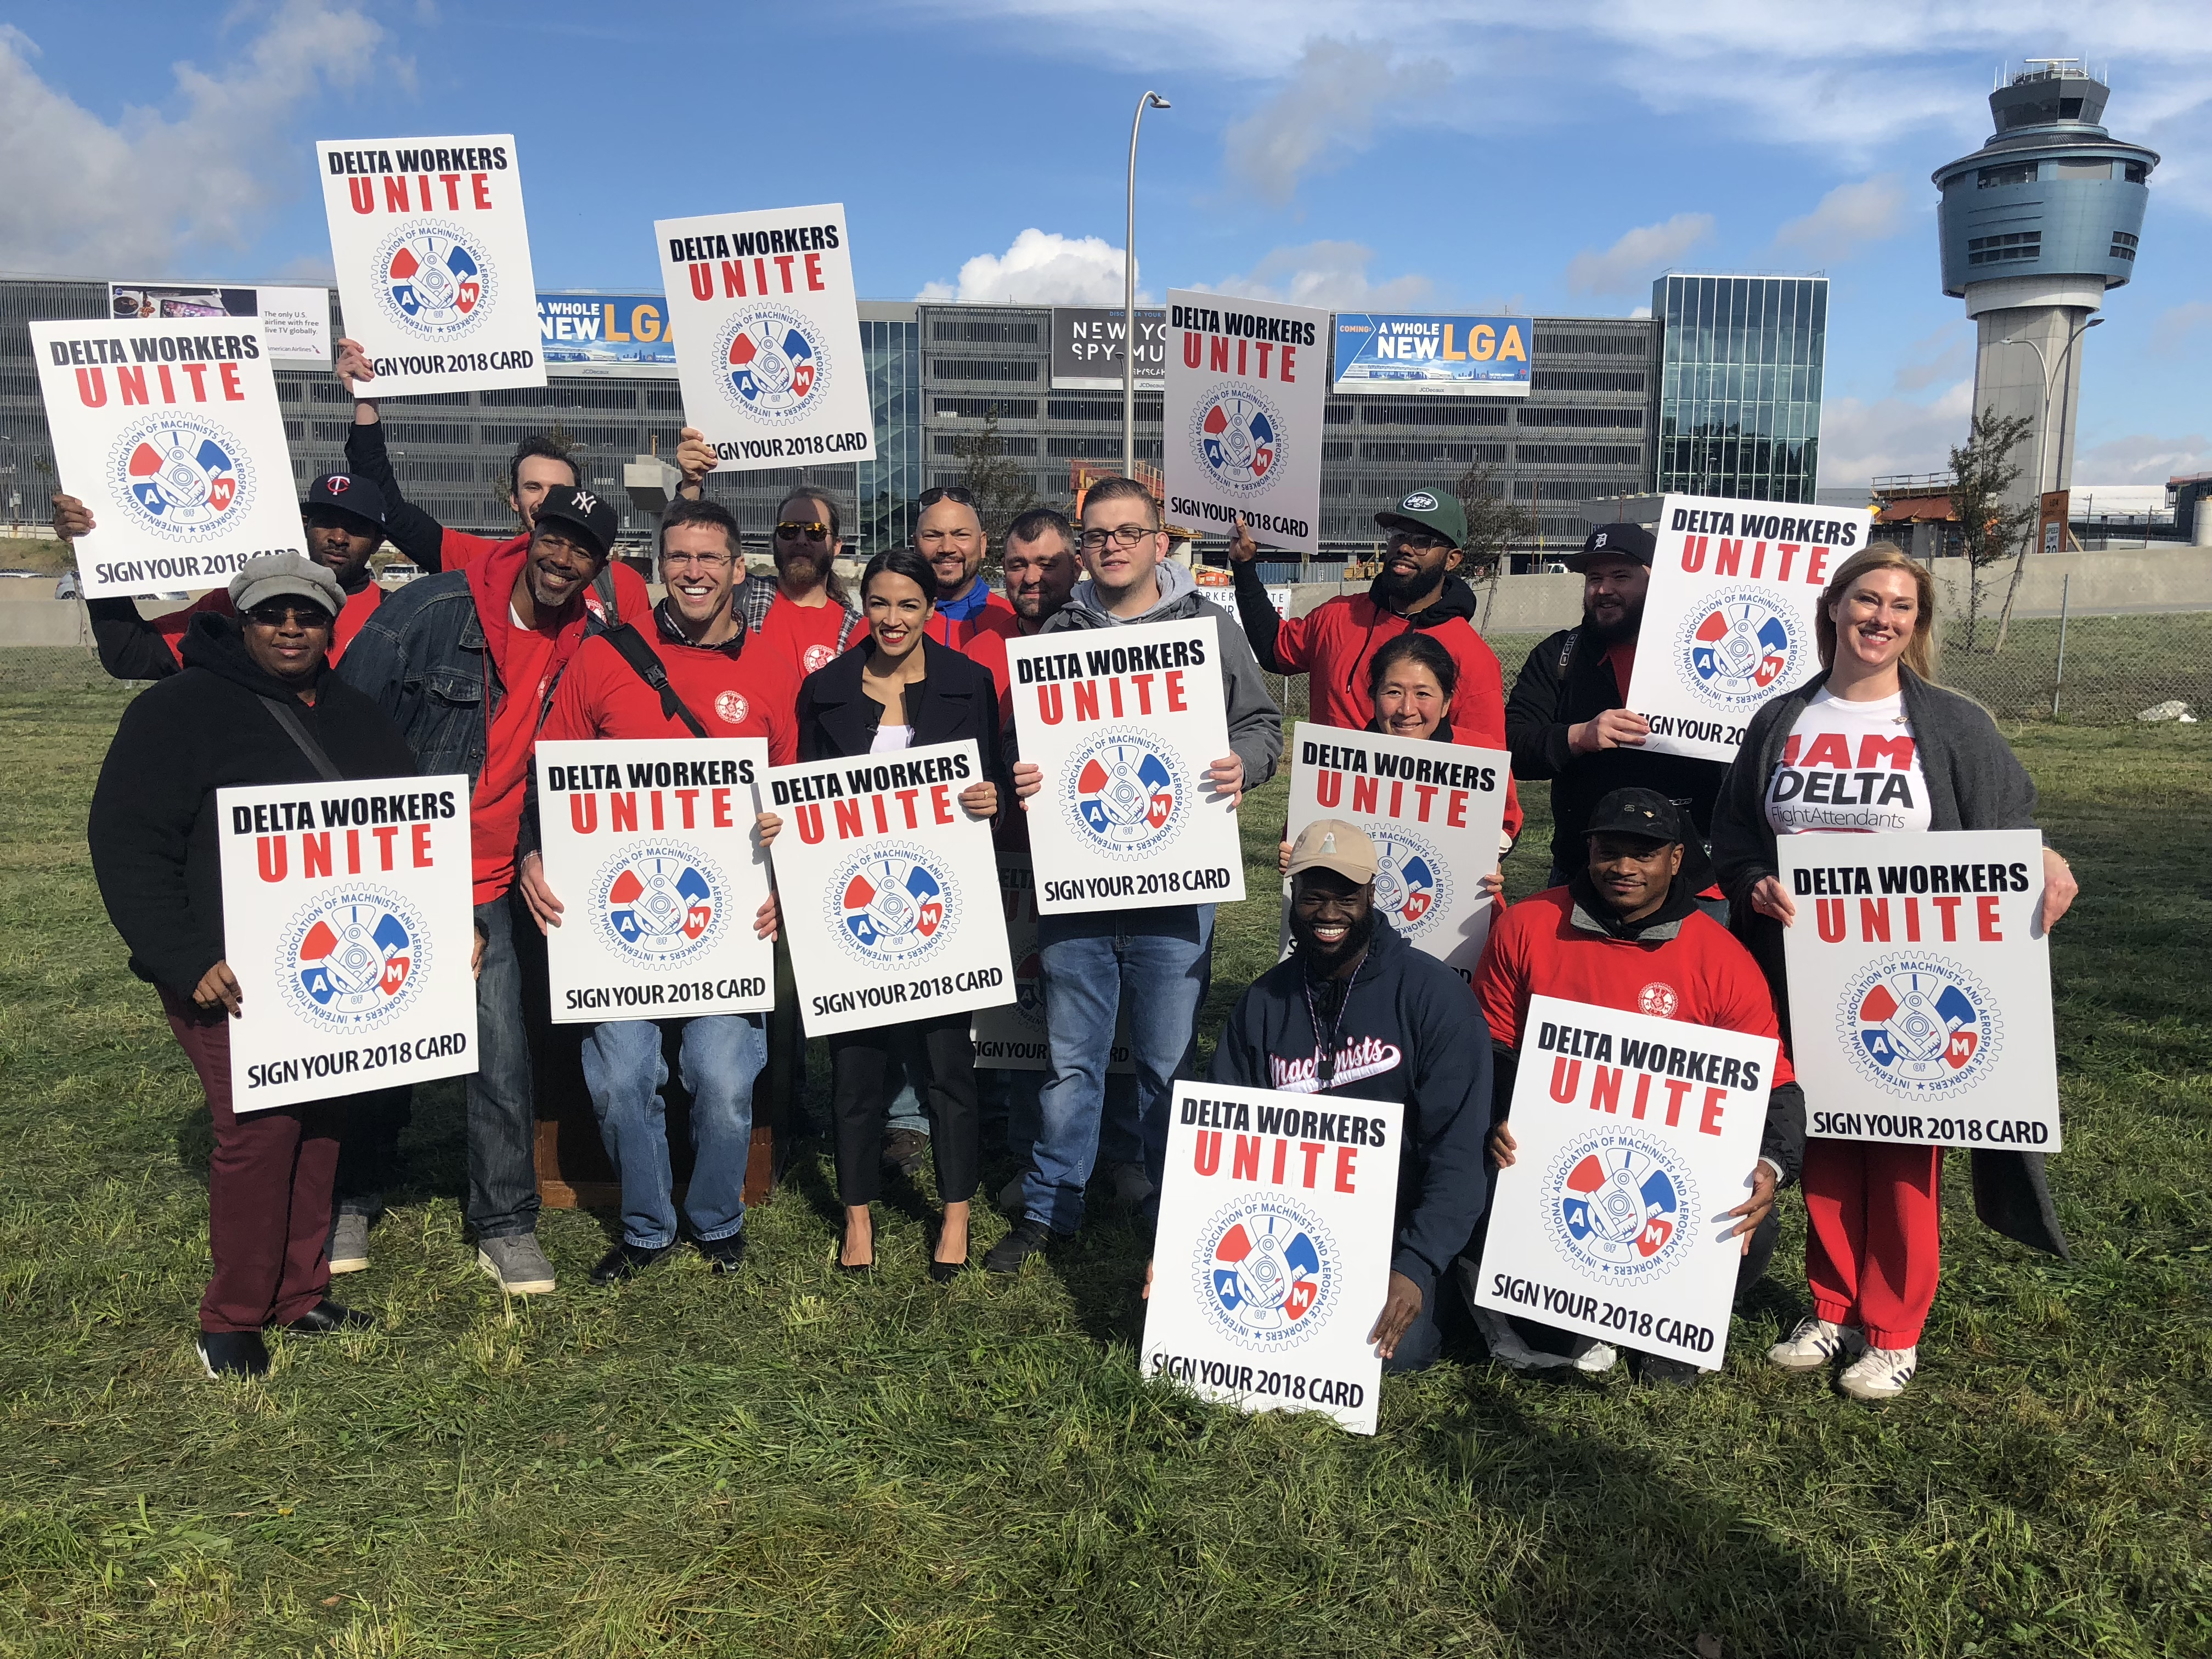 'We Can Win Together': Delta Workers Get Boost in Big Apple